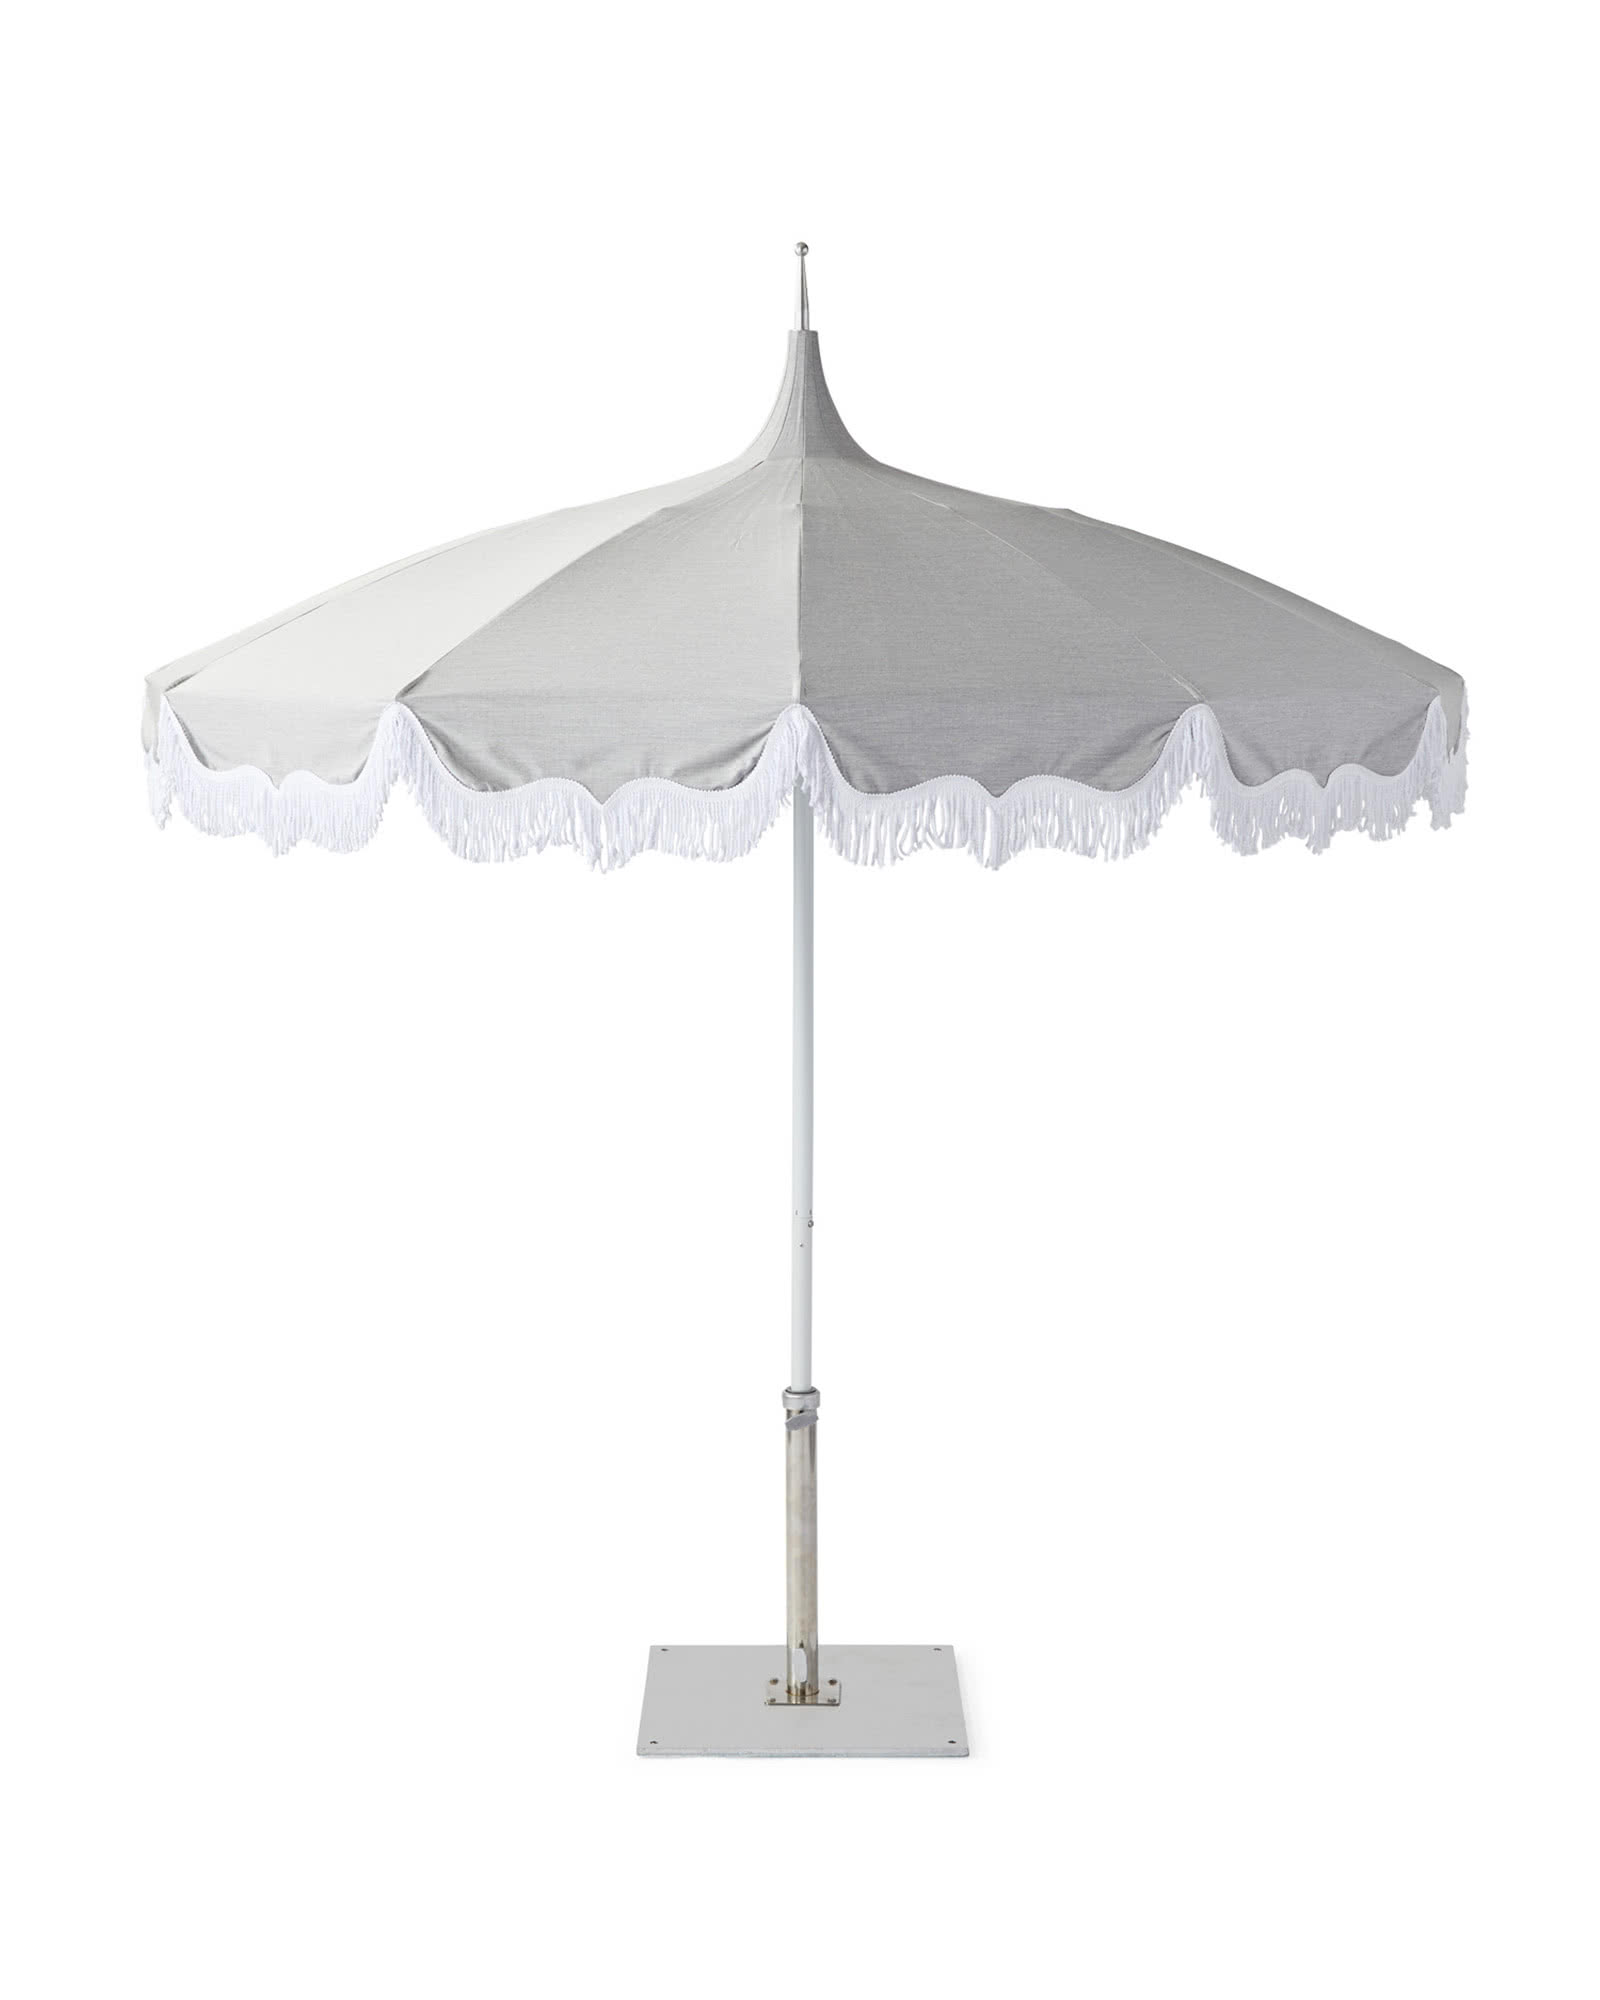 Fringed Umbrella, Granite/White